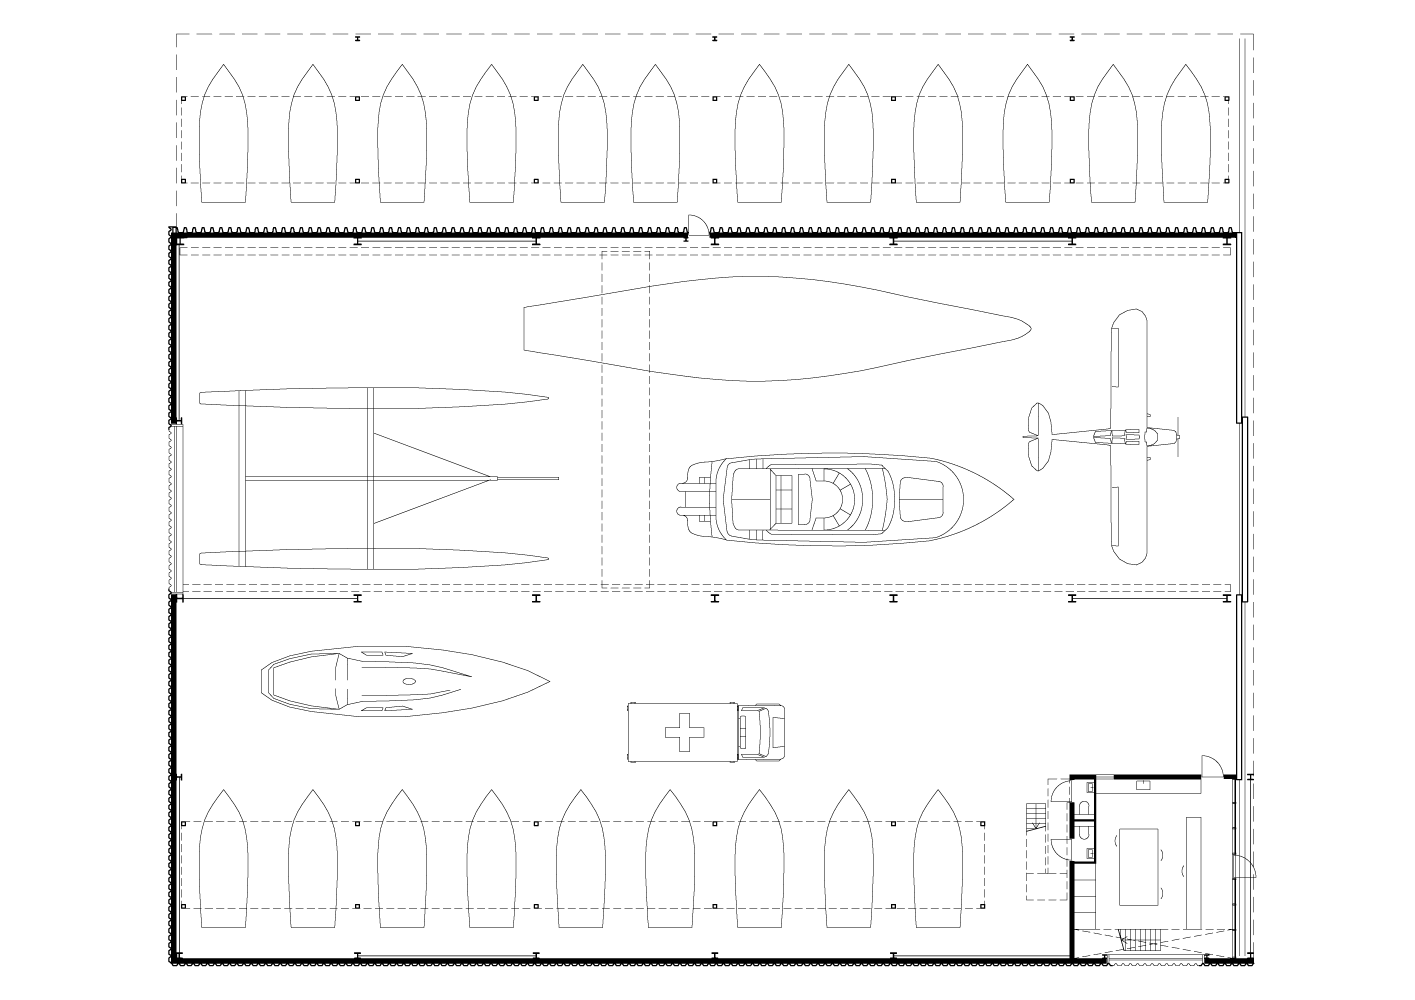 plan drawing of Boat Hangar project by BETA architects Evert Klinkenberg Auguste Gus van Oppen